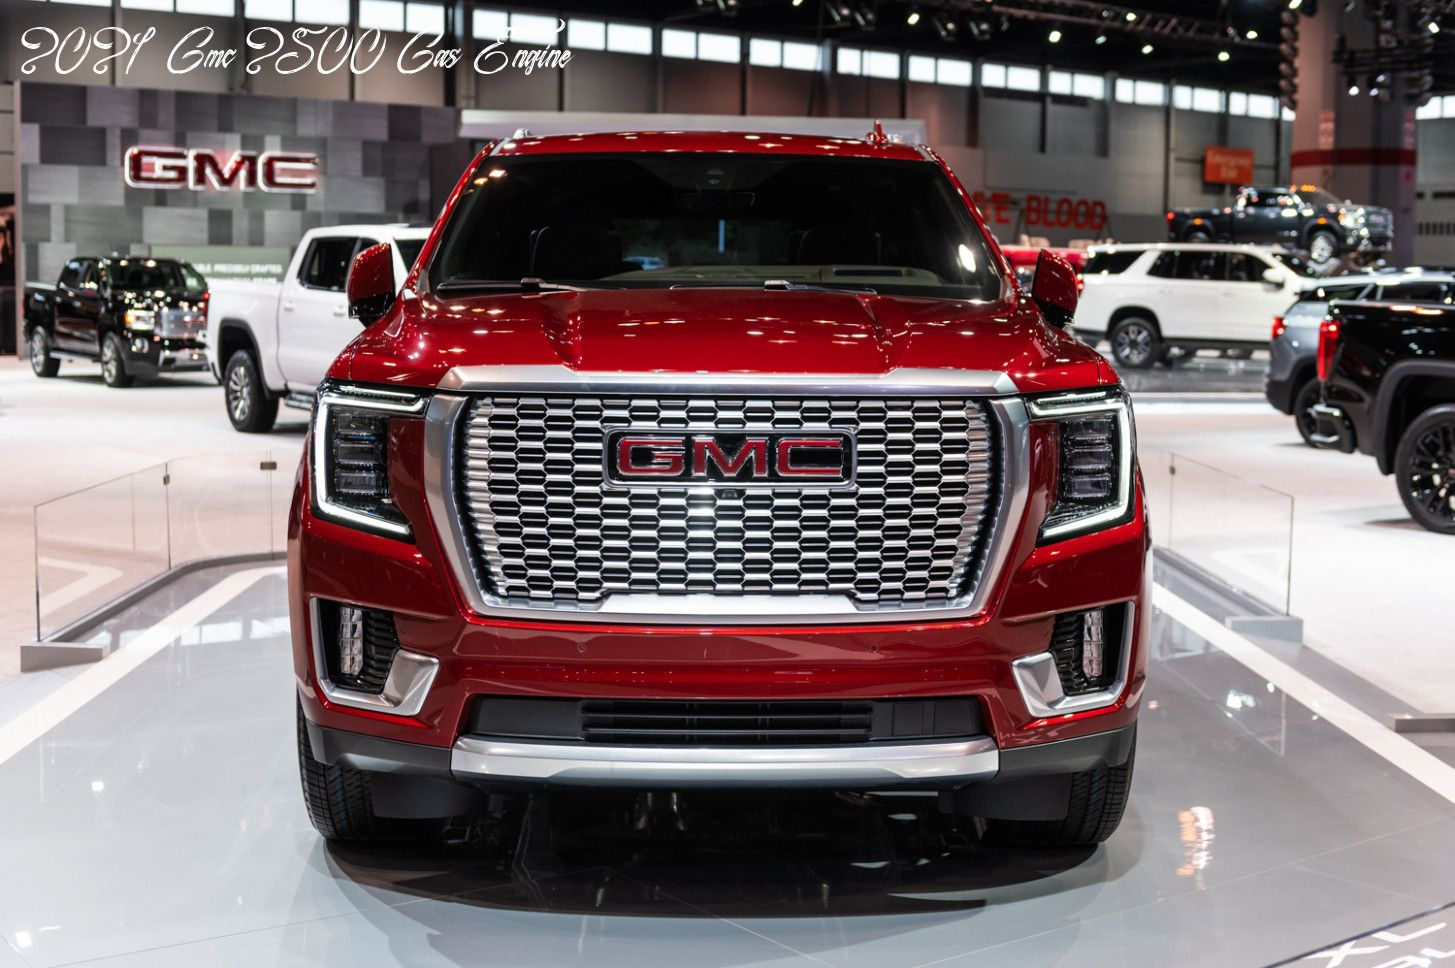 2021 Gmc 2500 Gas Engine Price Design And Review In 2020 Gmc 2500 Gmc Luxury Cars Range Rover